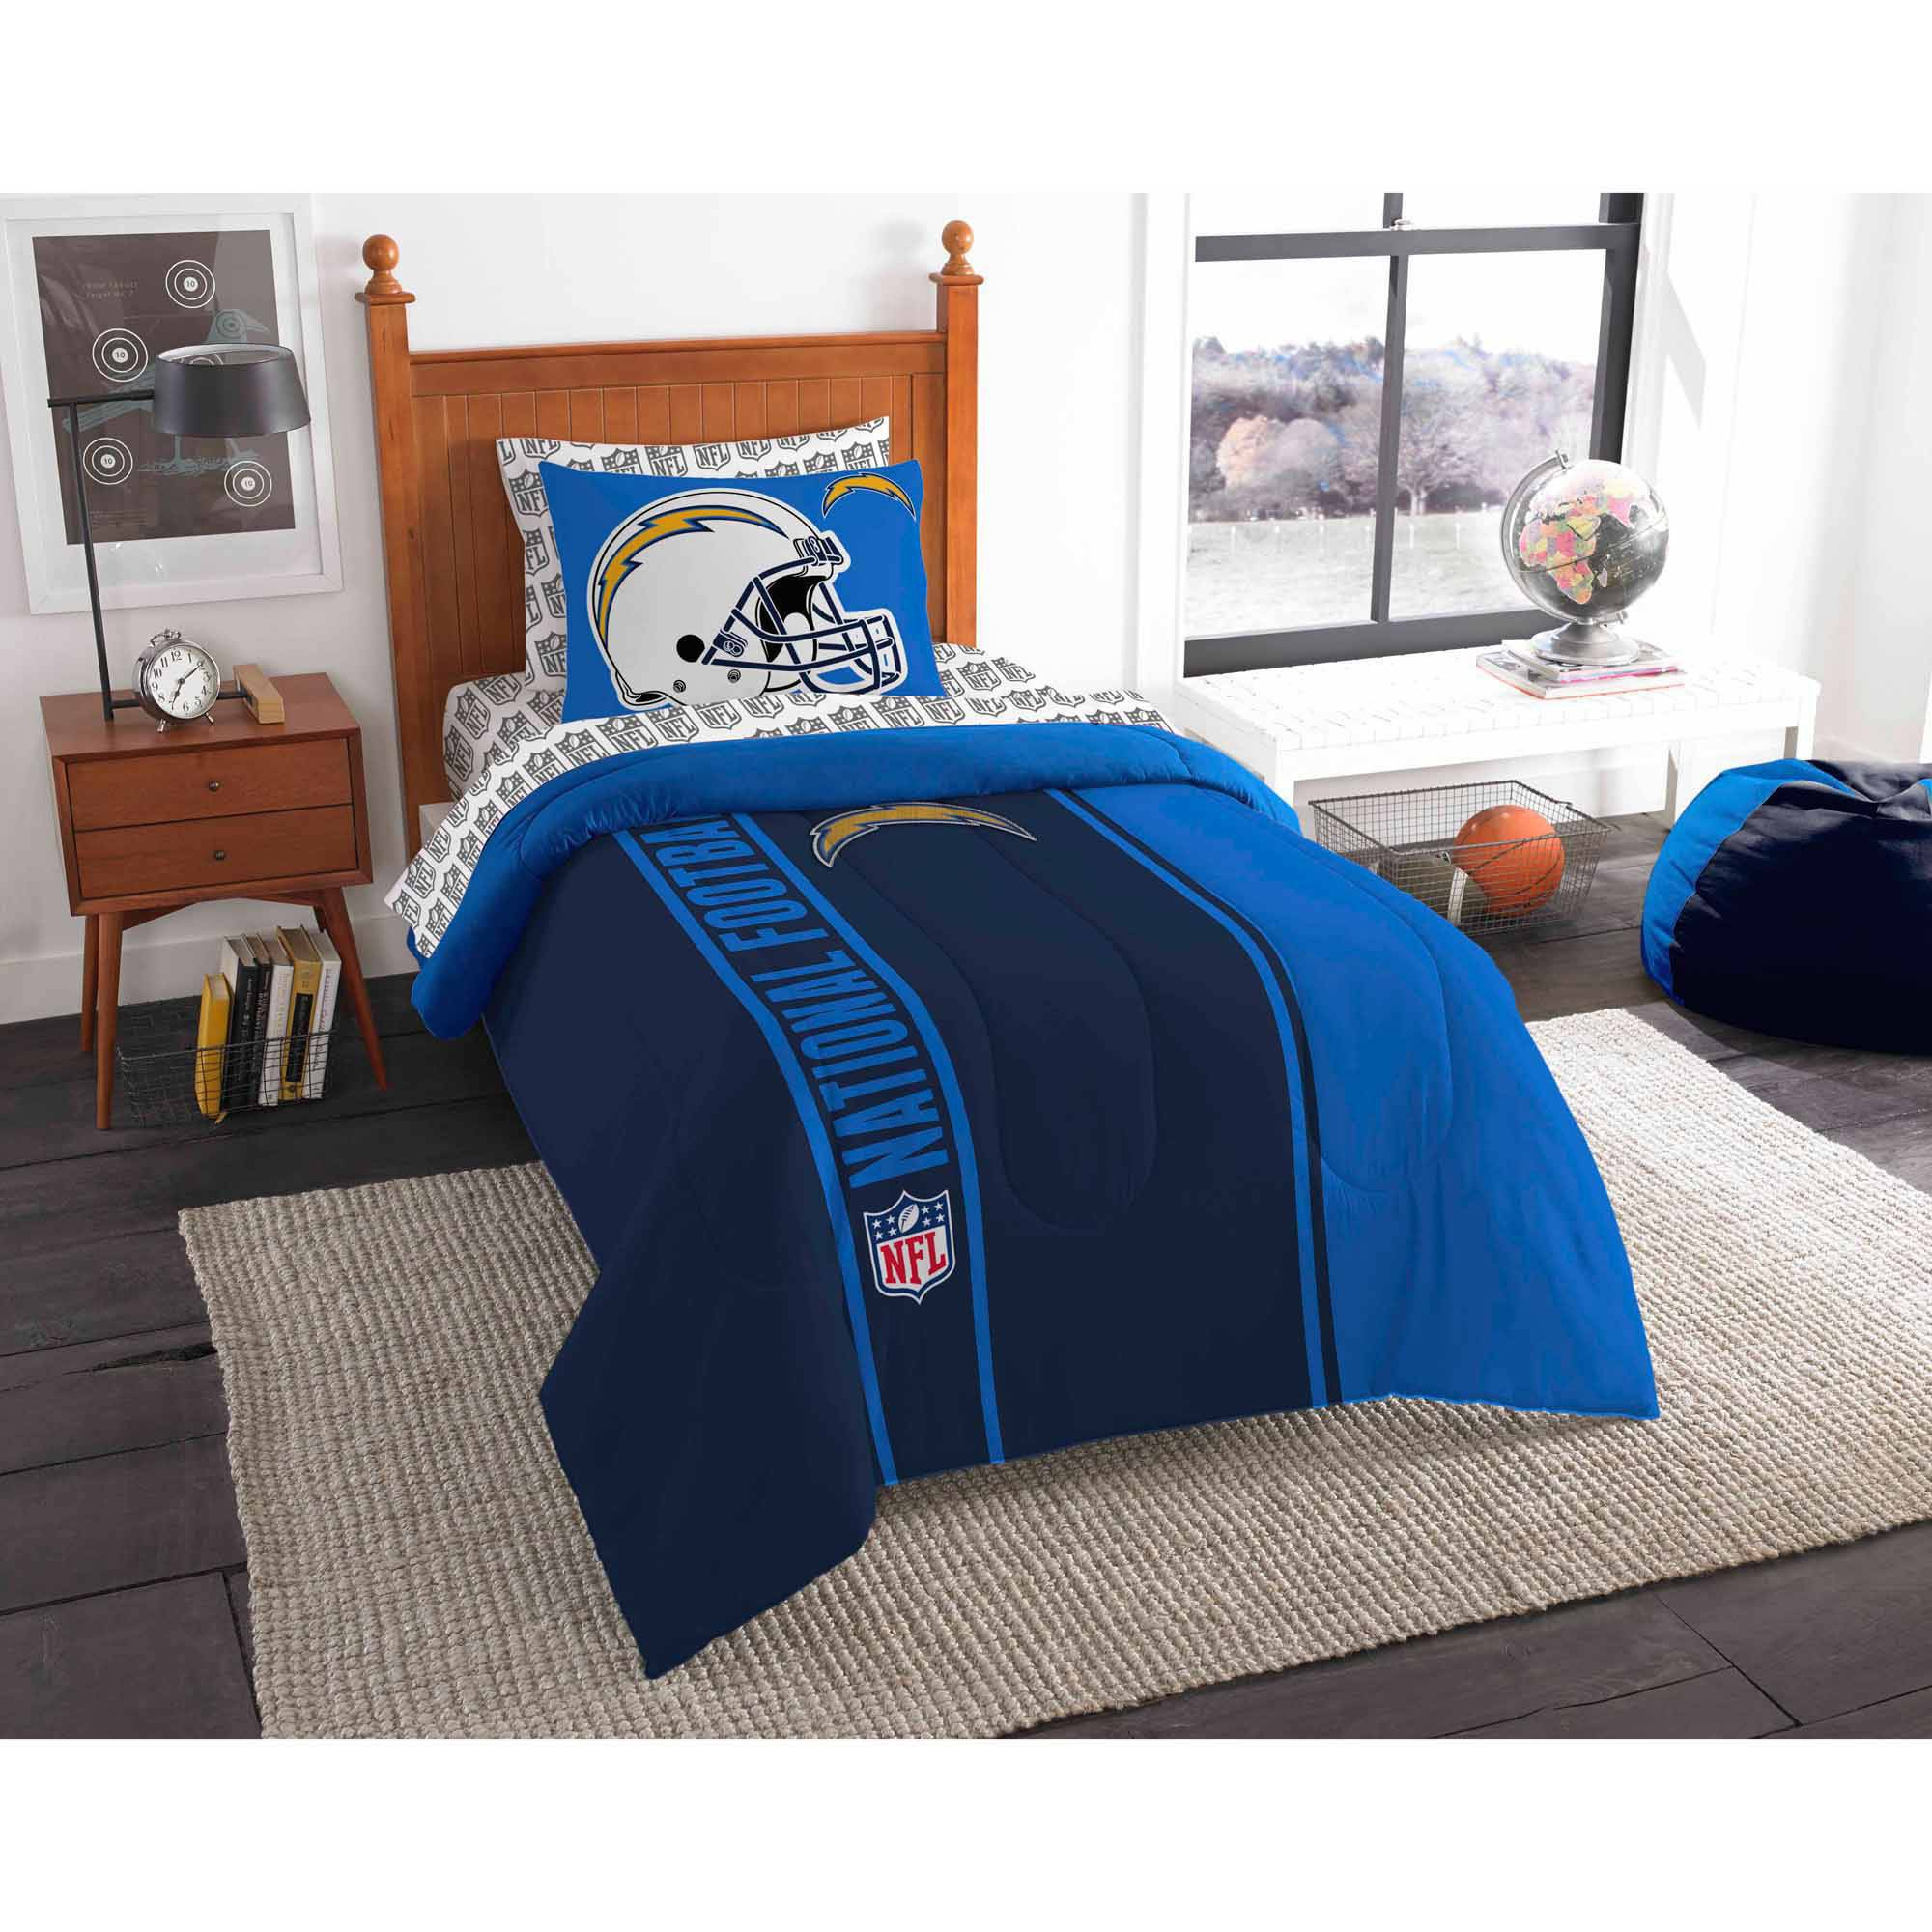 NFL San Diego Chargers Soft and Cozy Bed in a Bag Complete Bedding Set